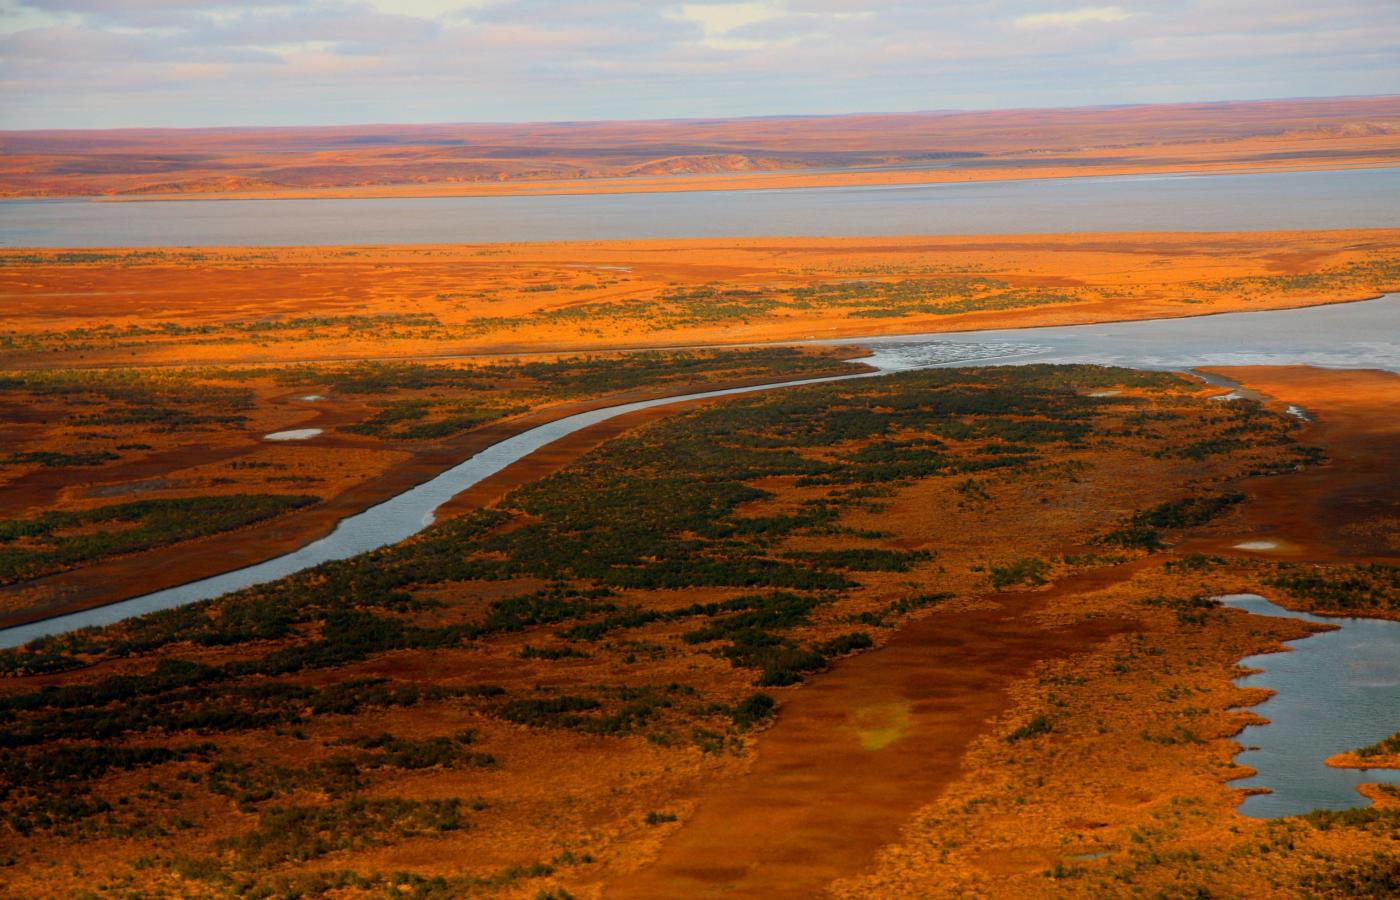 Drone image of the tundra in autumn colour near the Beaufort Sea in the NWT